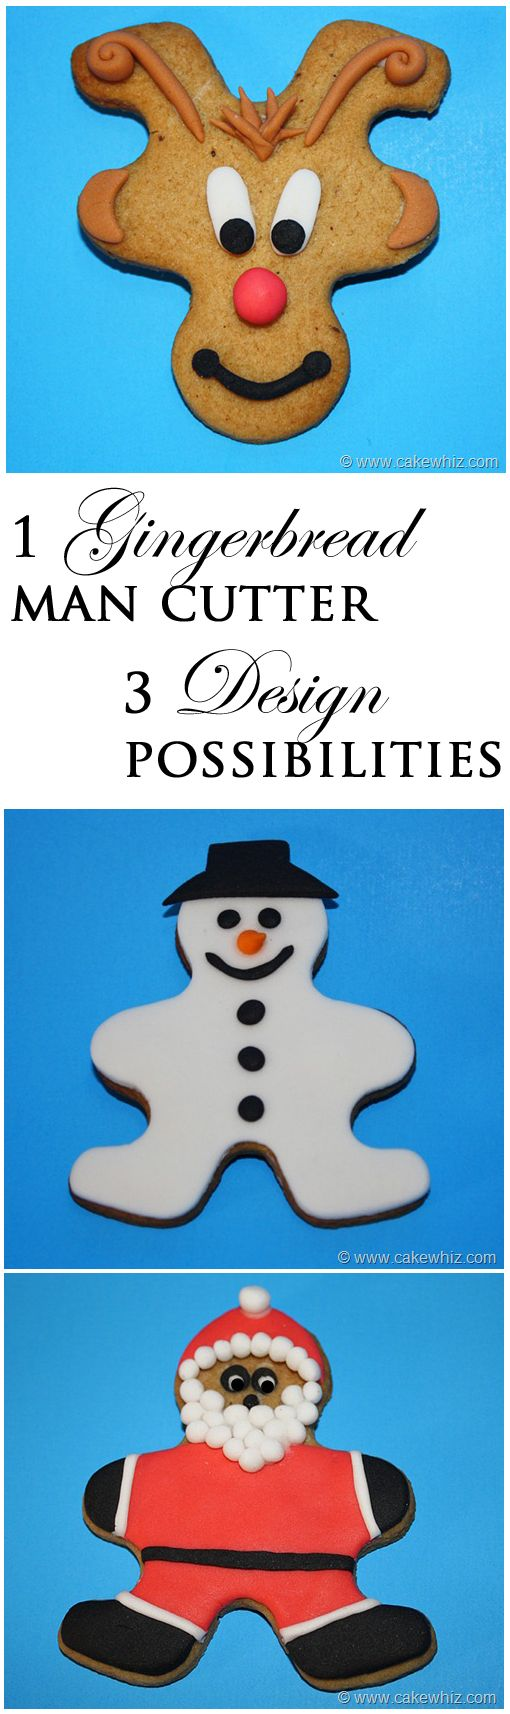 Use a single gingerbread man cutter to make 3 different designs... Rudolph, snowman and Santa! From cakewhiz.com